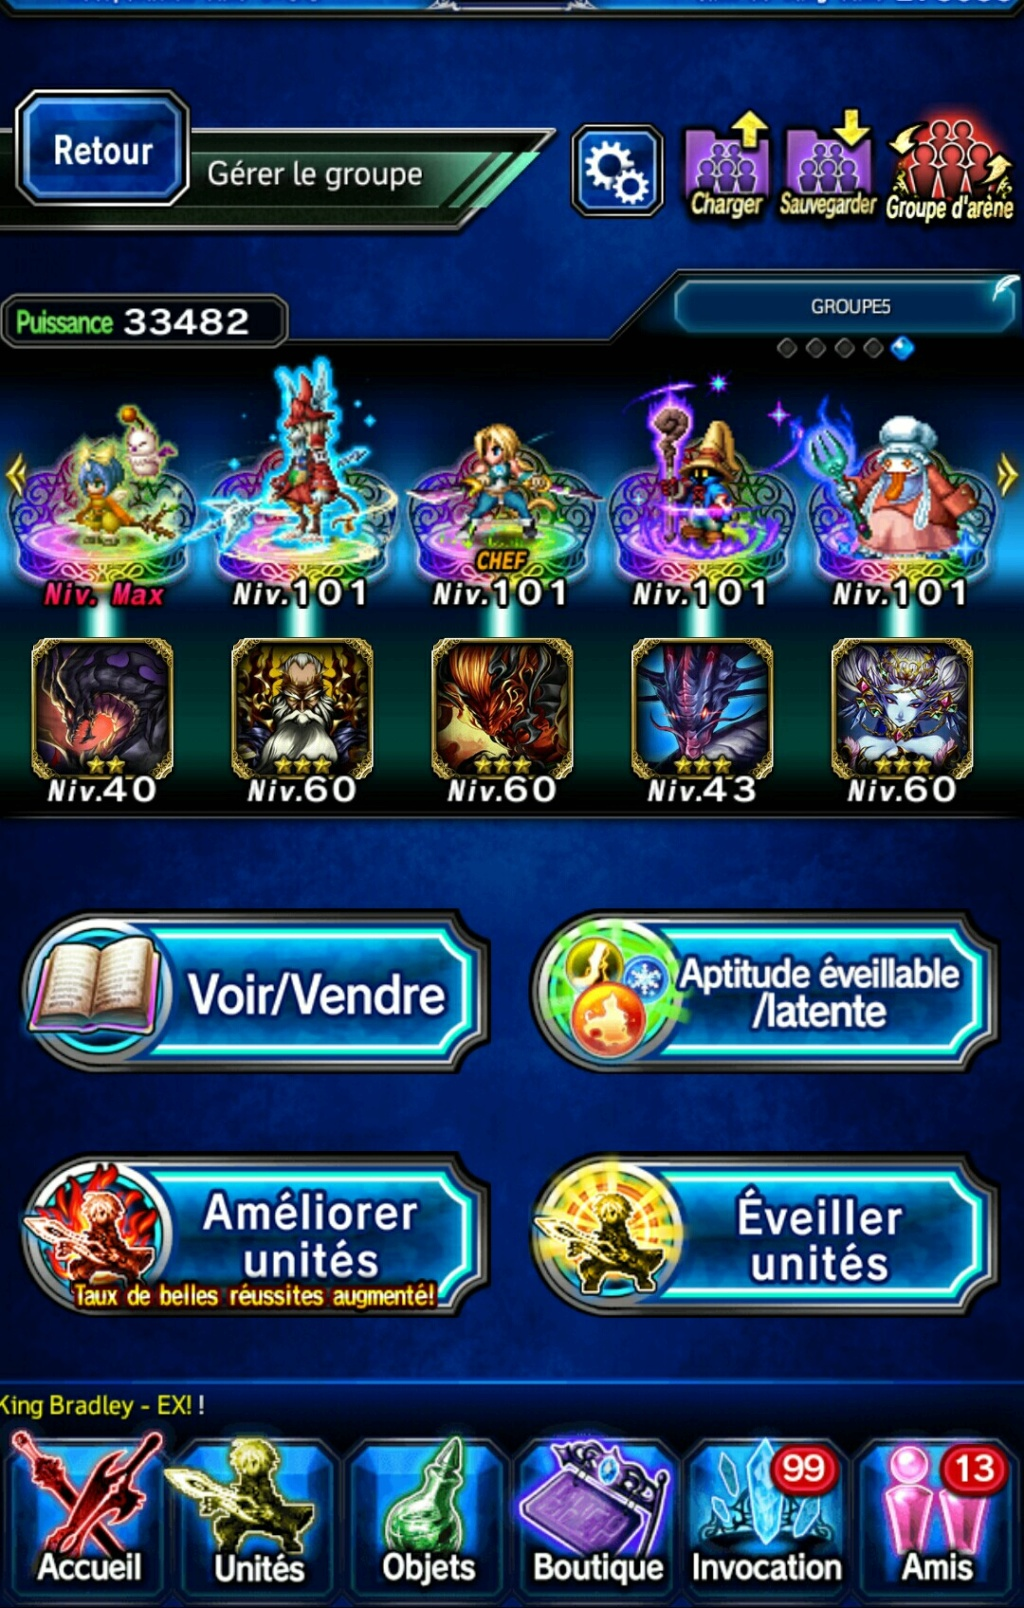 Invocations du moment, boutique d'échange, tickets 5★ garantie et tickets d'échange - FFIX (RTZidane/DKFreya/BMVivi) - du 02/04 au 16/04/20 Scree154